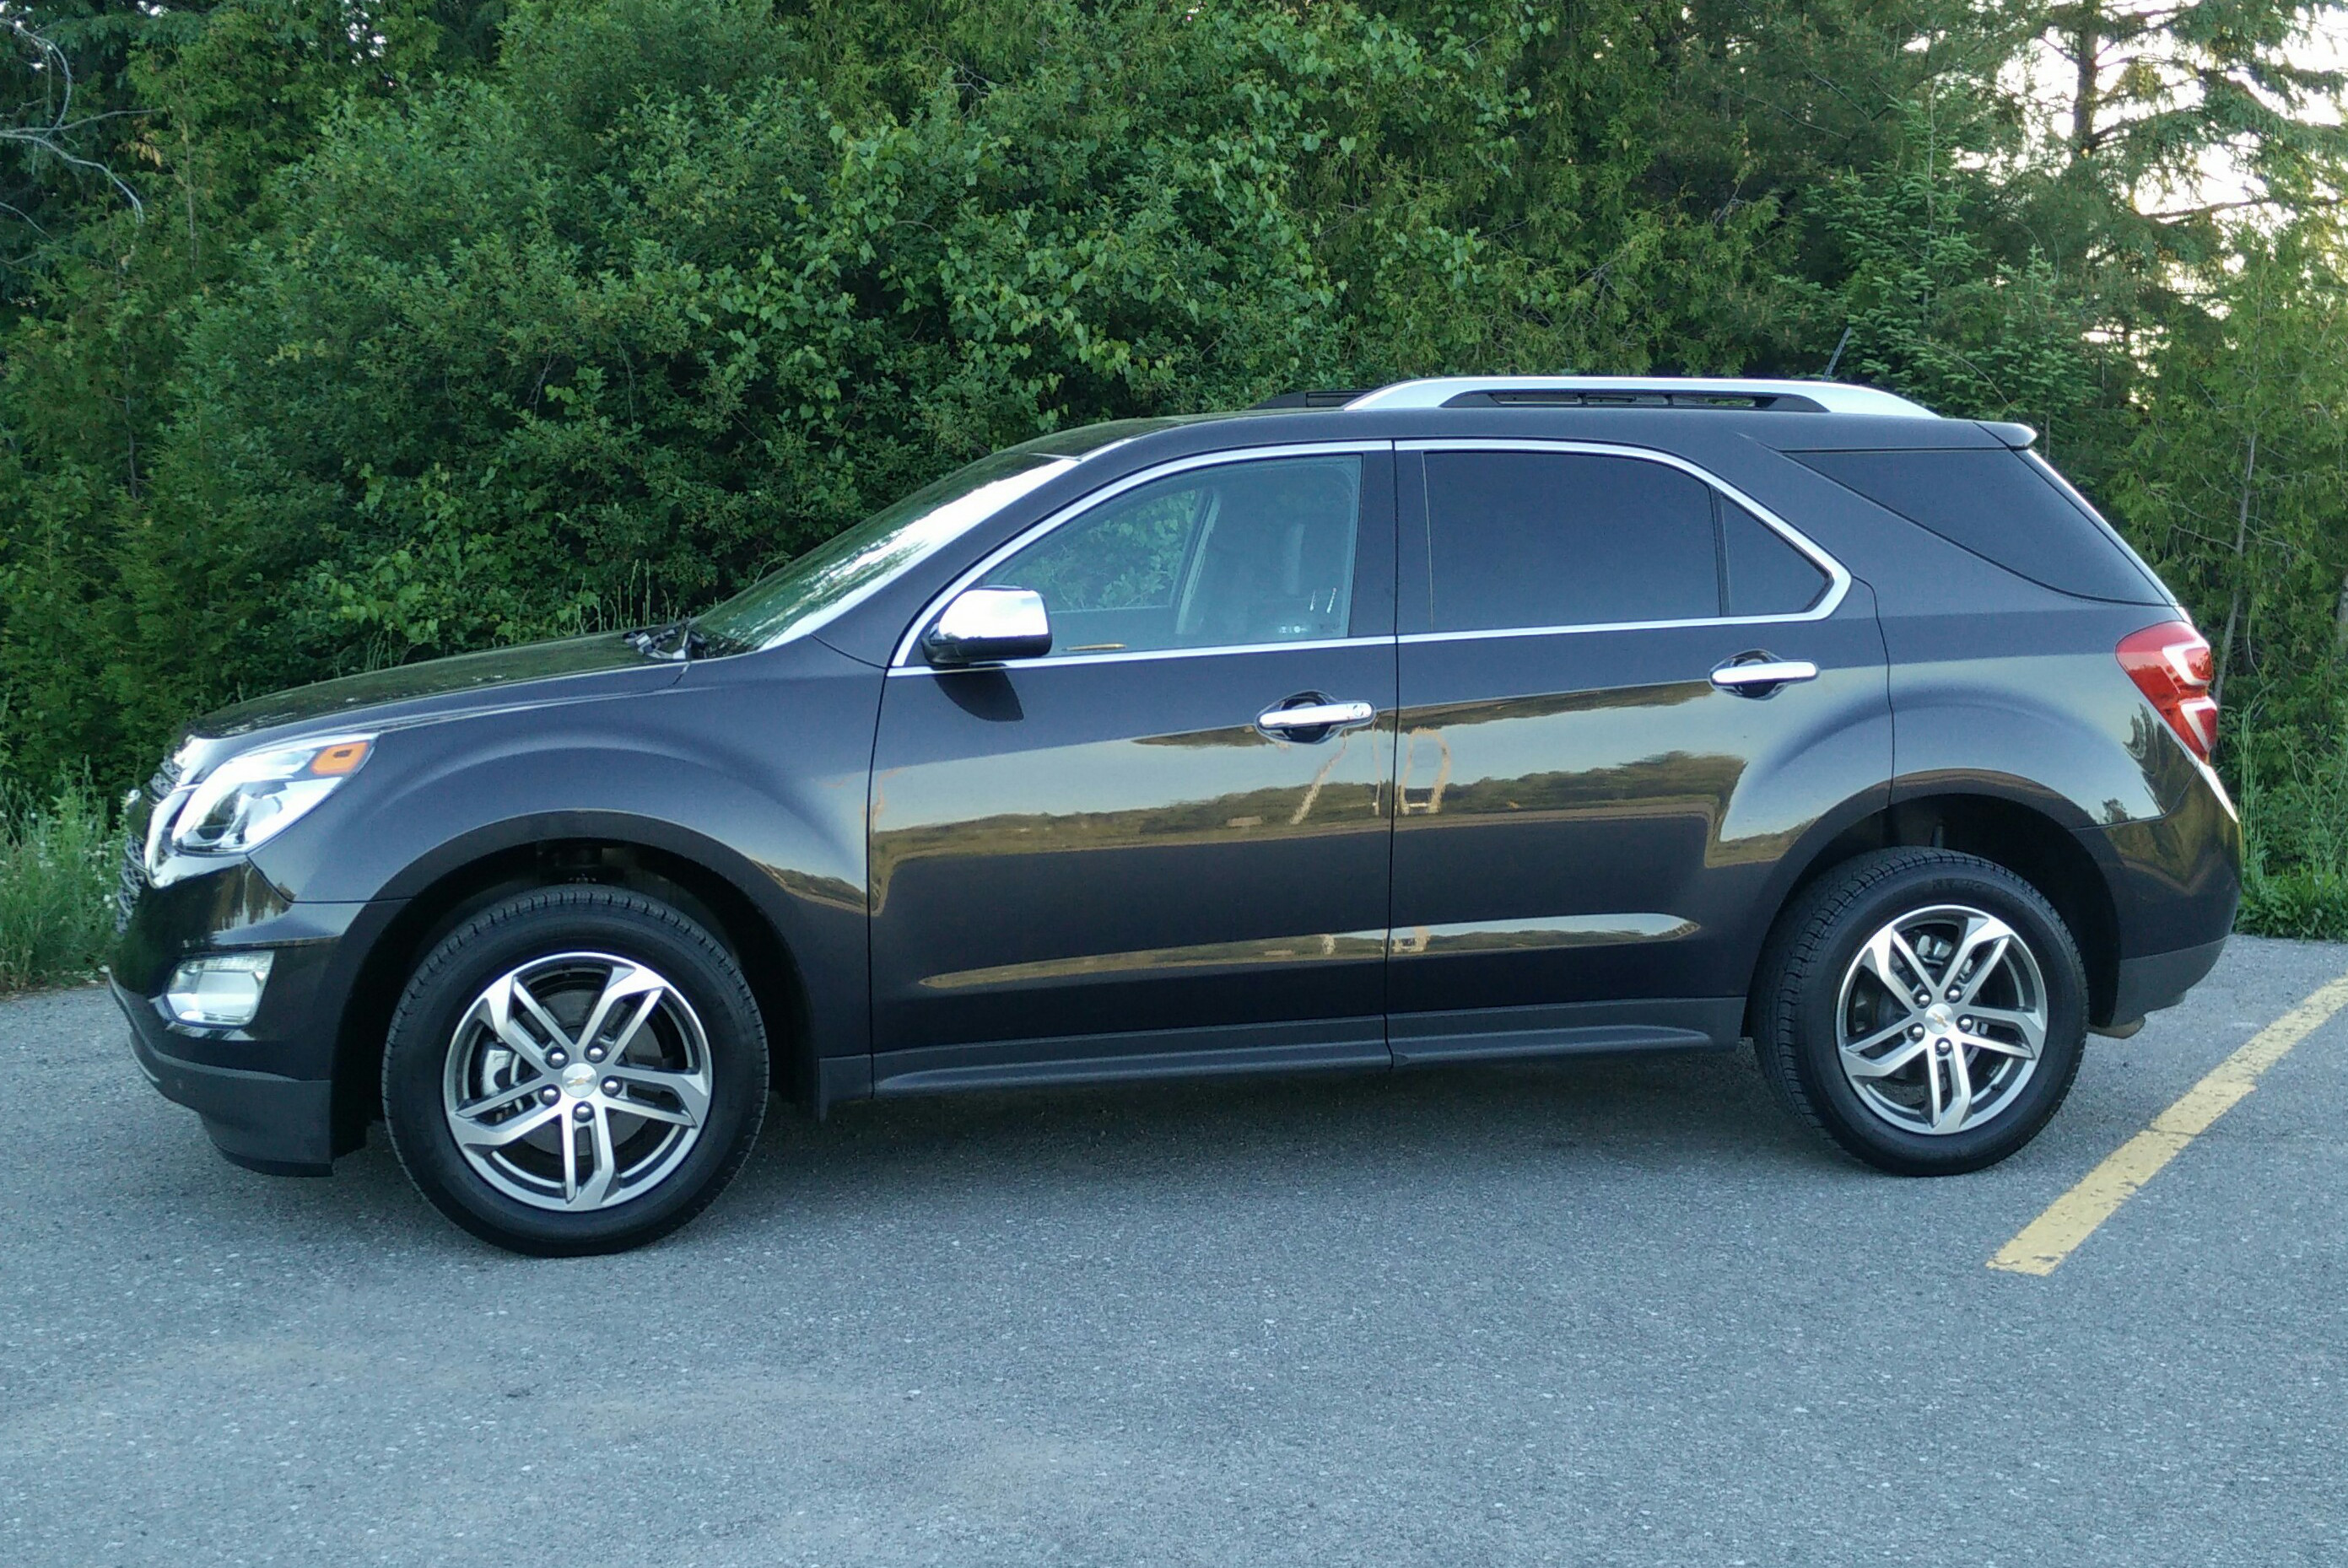 2014 Chevrolet Equinox Male Models Picture